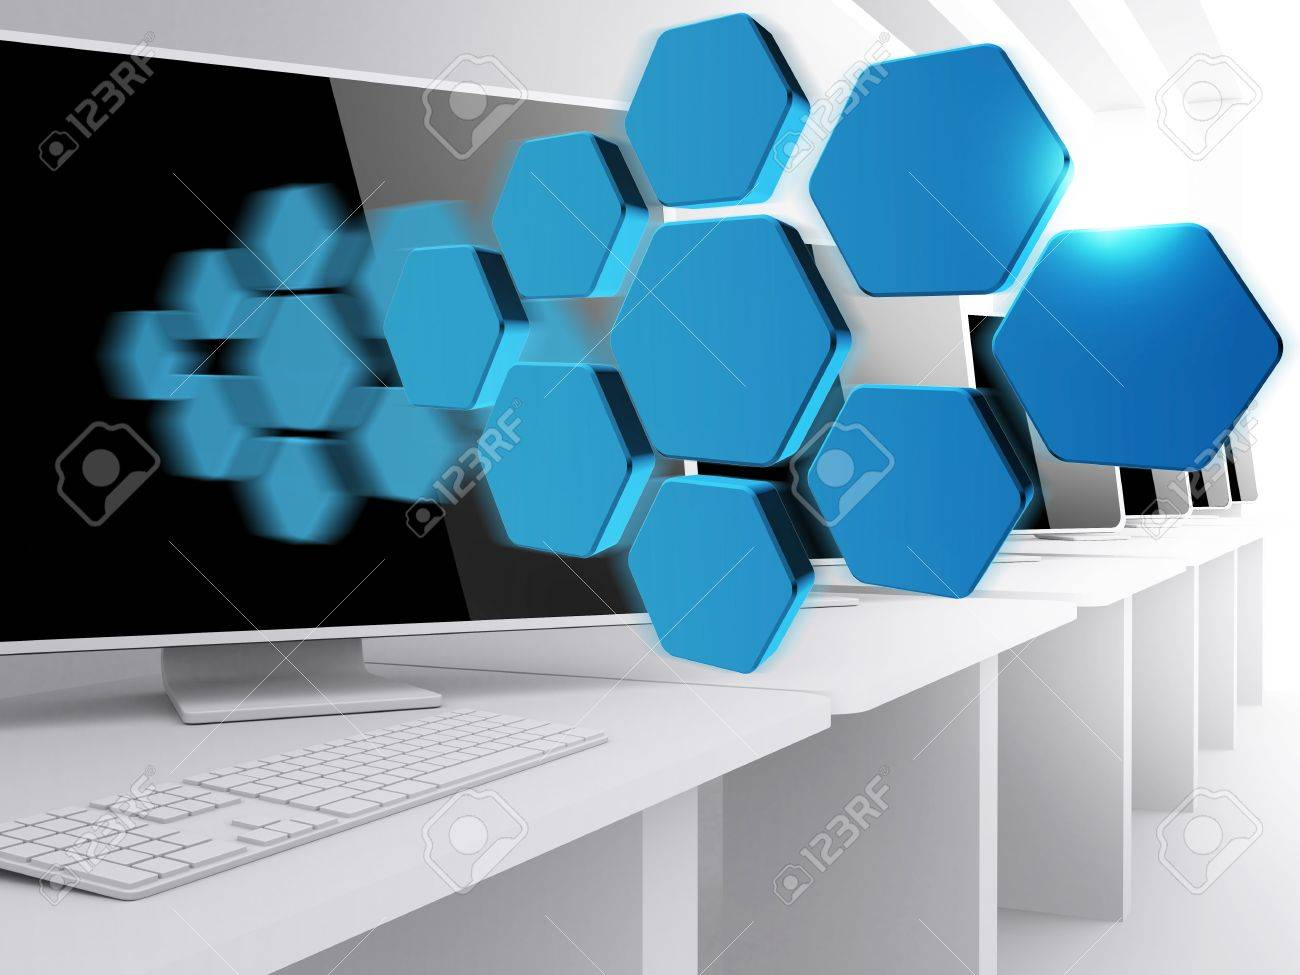 16081993 blank abstract diagram and computer room blank abstract diagram and computer room stock photo, picture and